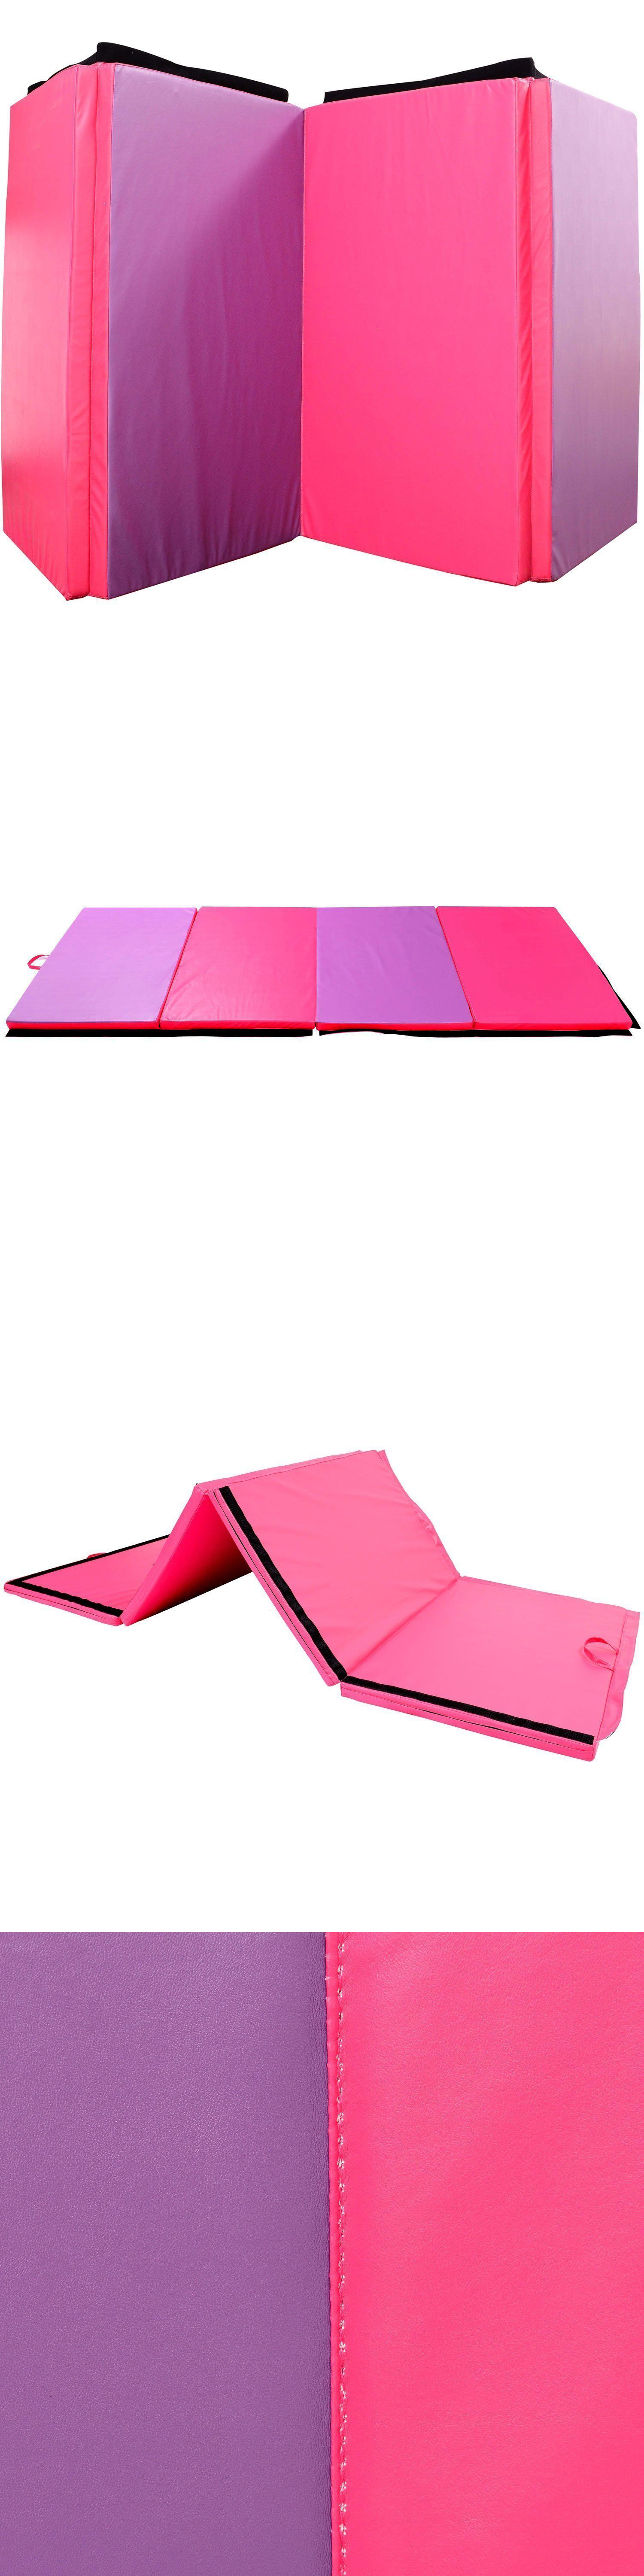 pu mats gymnastics panel cheap itm folding workout exercise mat fitness sportmad thick